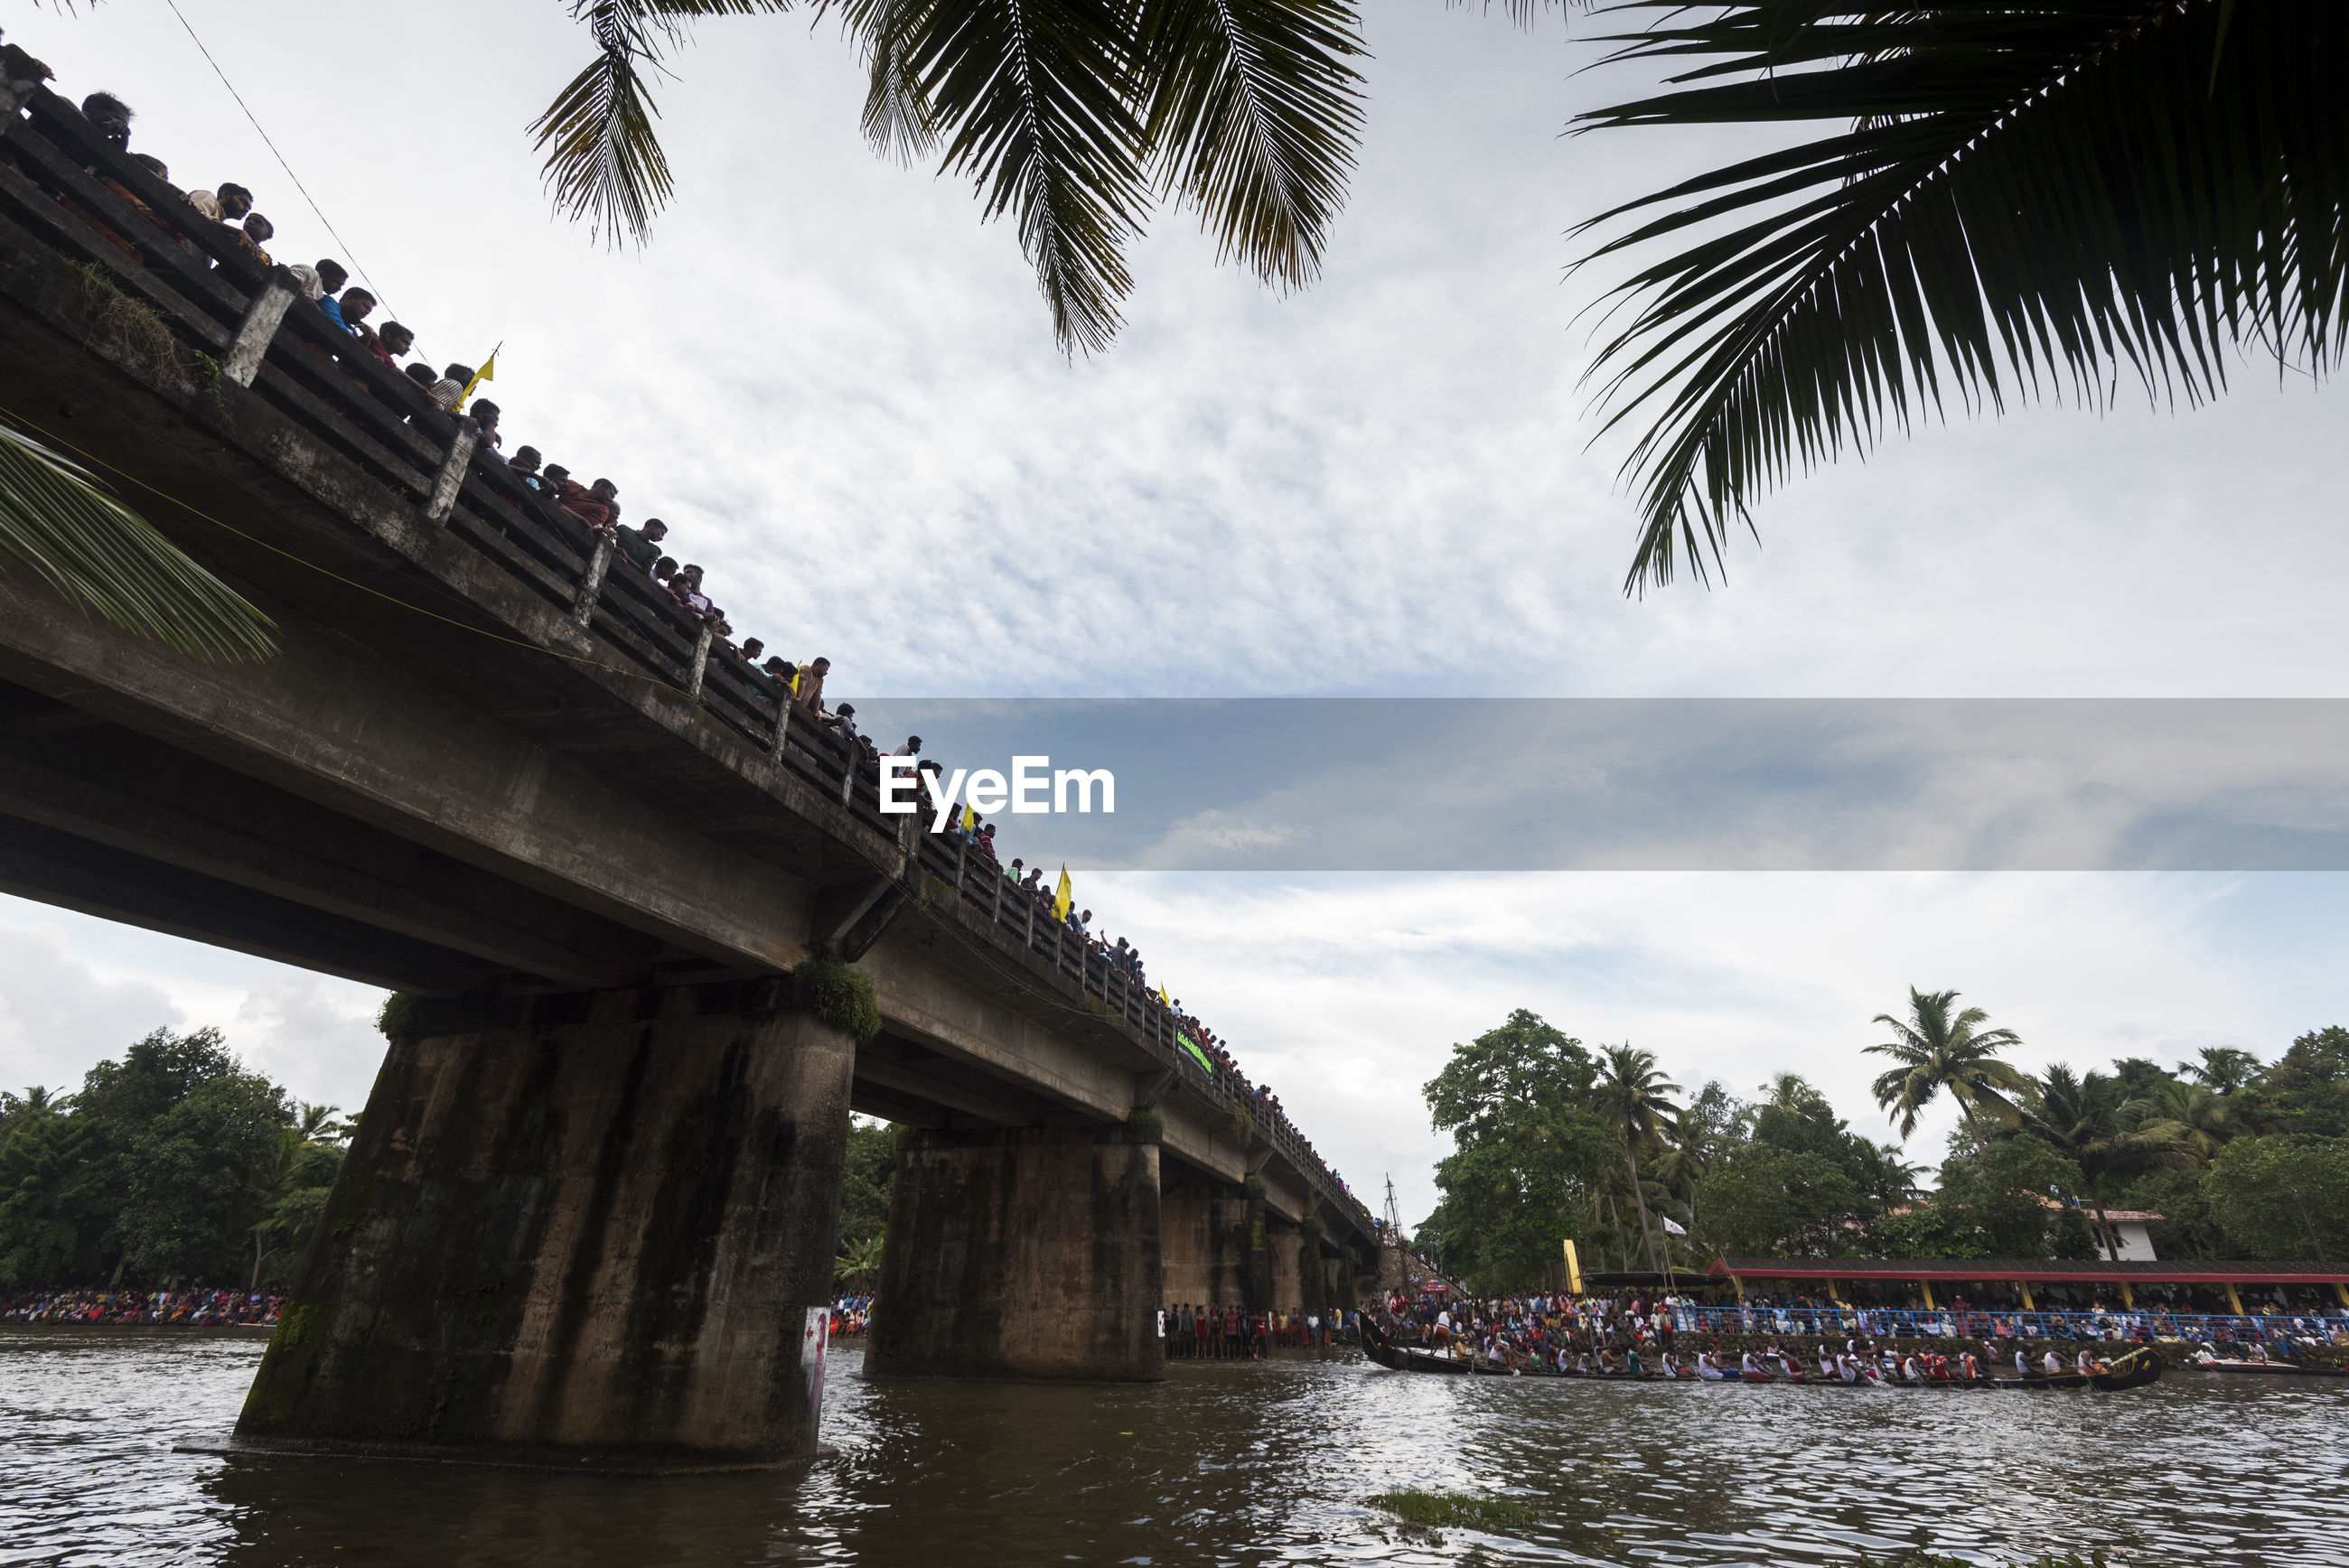 LOW ANGLE VIEW OF PALM TREES AND BRIDGE AGAINST SKY